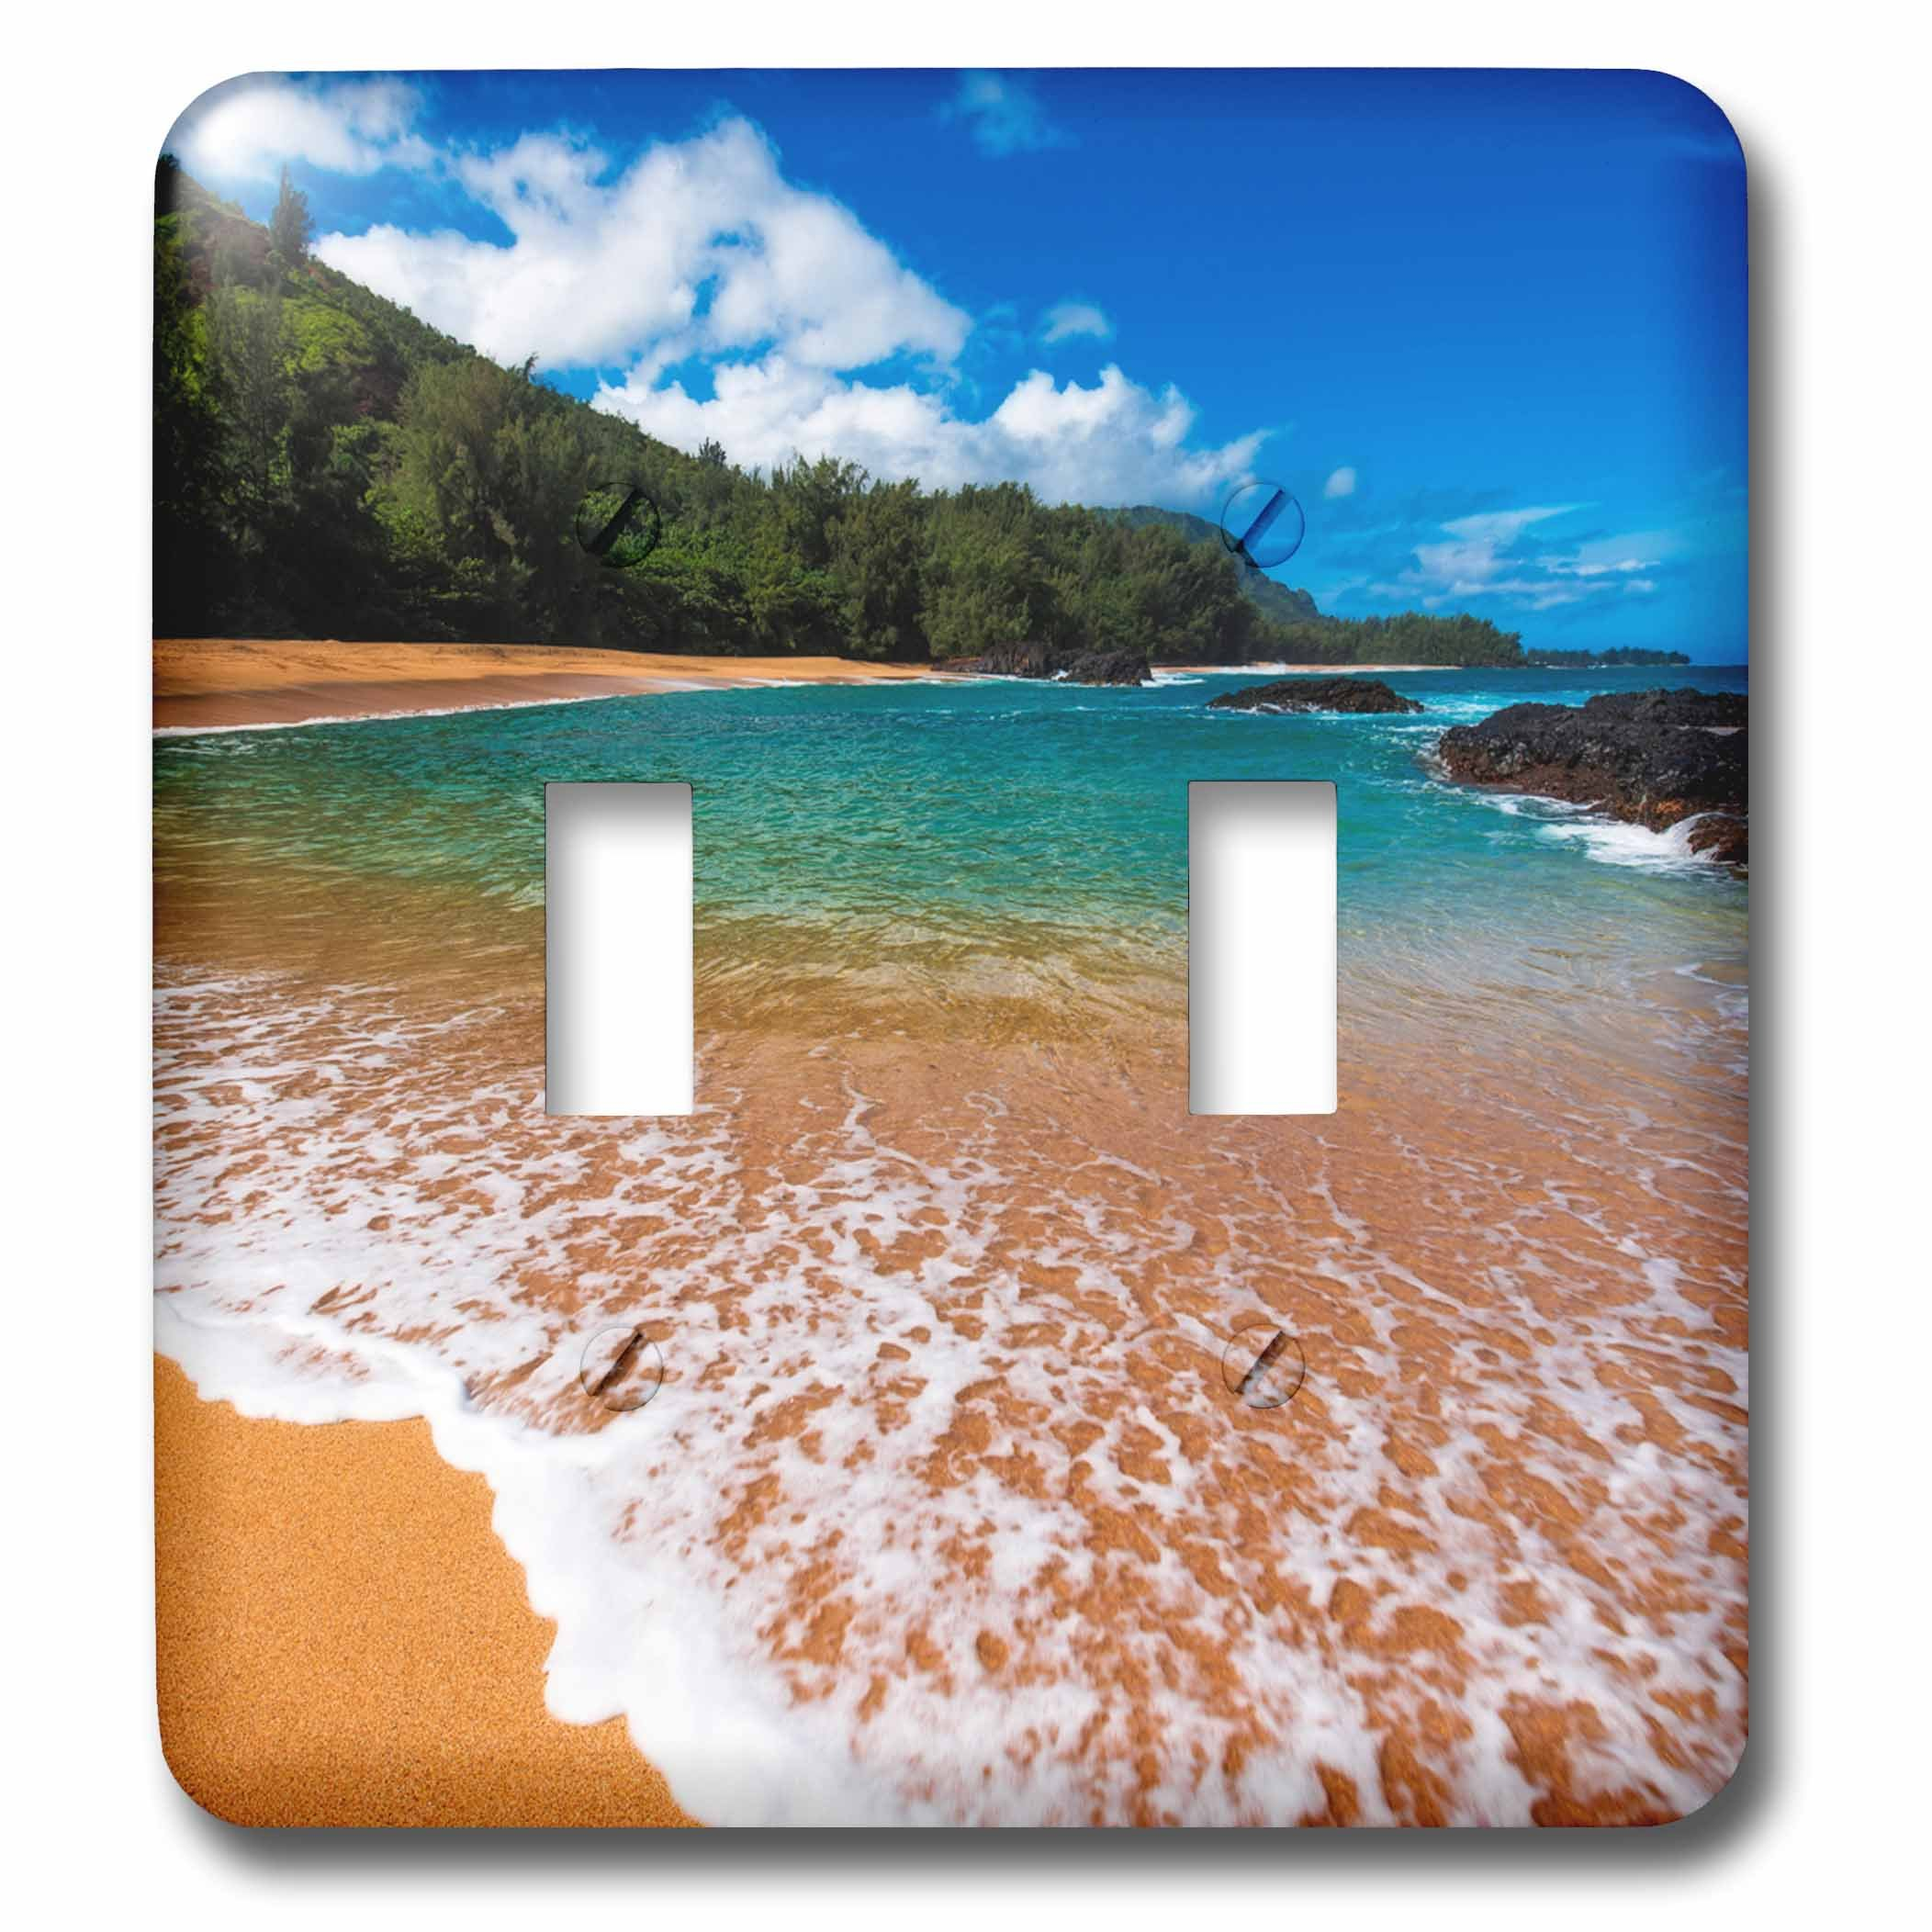 3dRose Danita Delimont - Beaches - Sand and surf at Lumahai Beach, Island of Kauai, Hawaii, USA - Light Switch Covers - double toggle switch (lsp_278945_2)